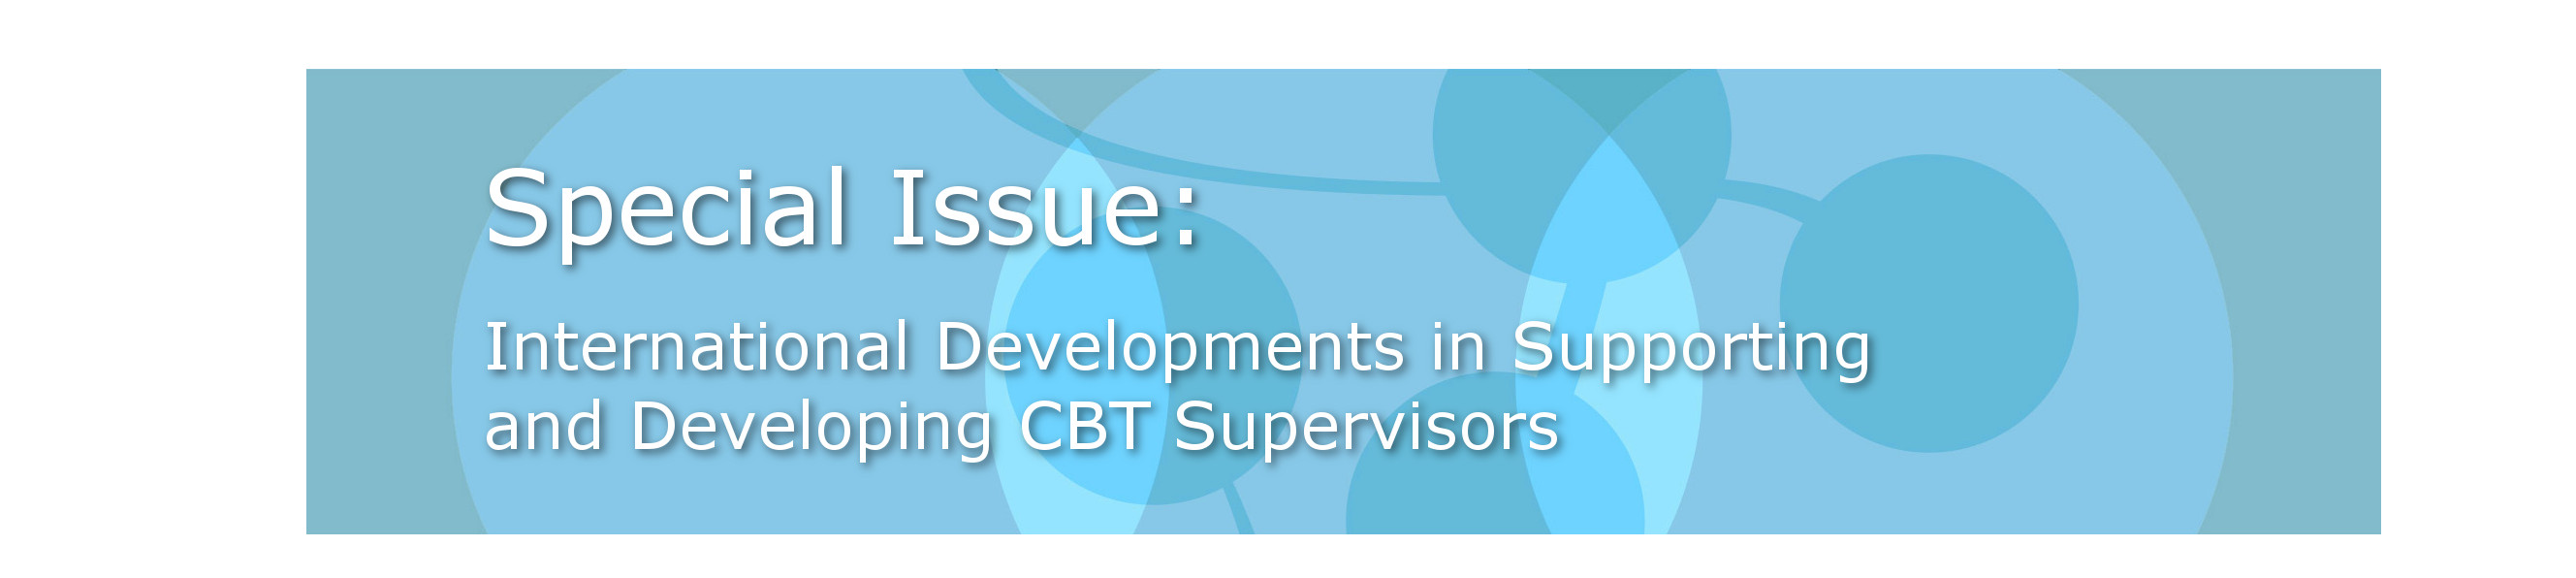 CBT Special Issue Banner